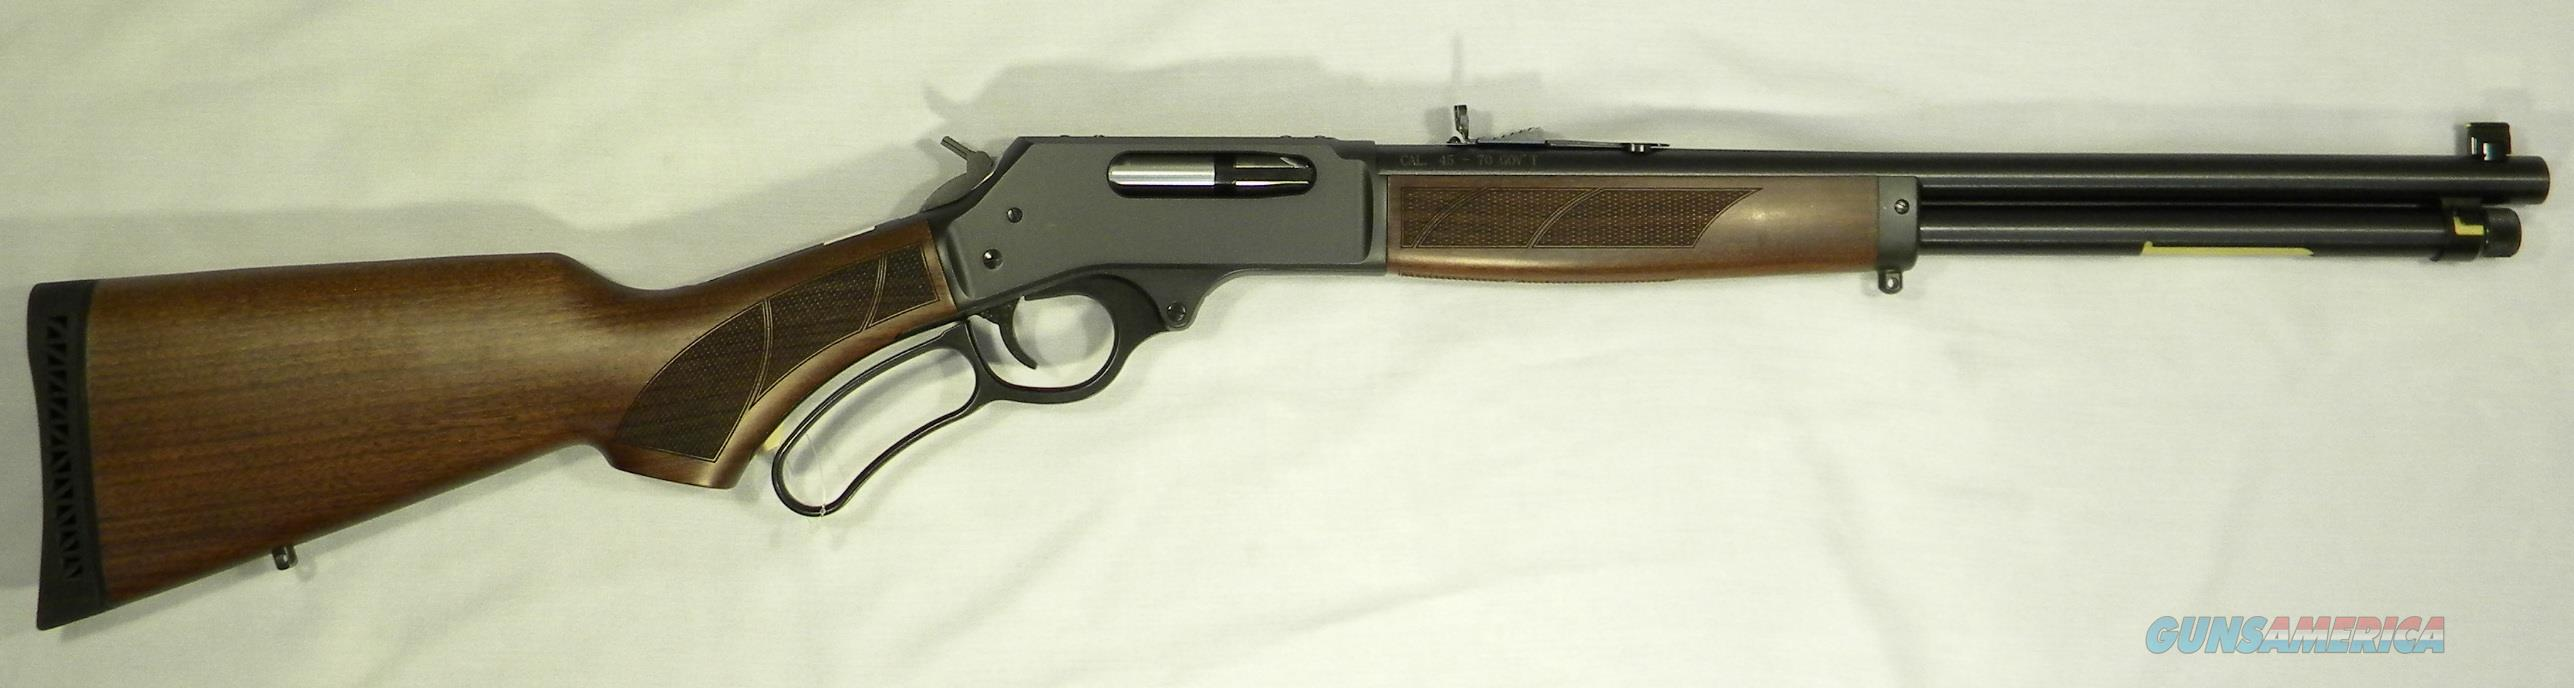 Henry H010, Steel Frame .45-70 Gov't. Lever-Action Rifle  Guns > Rifles > Henry Rifle Company